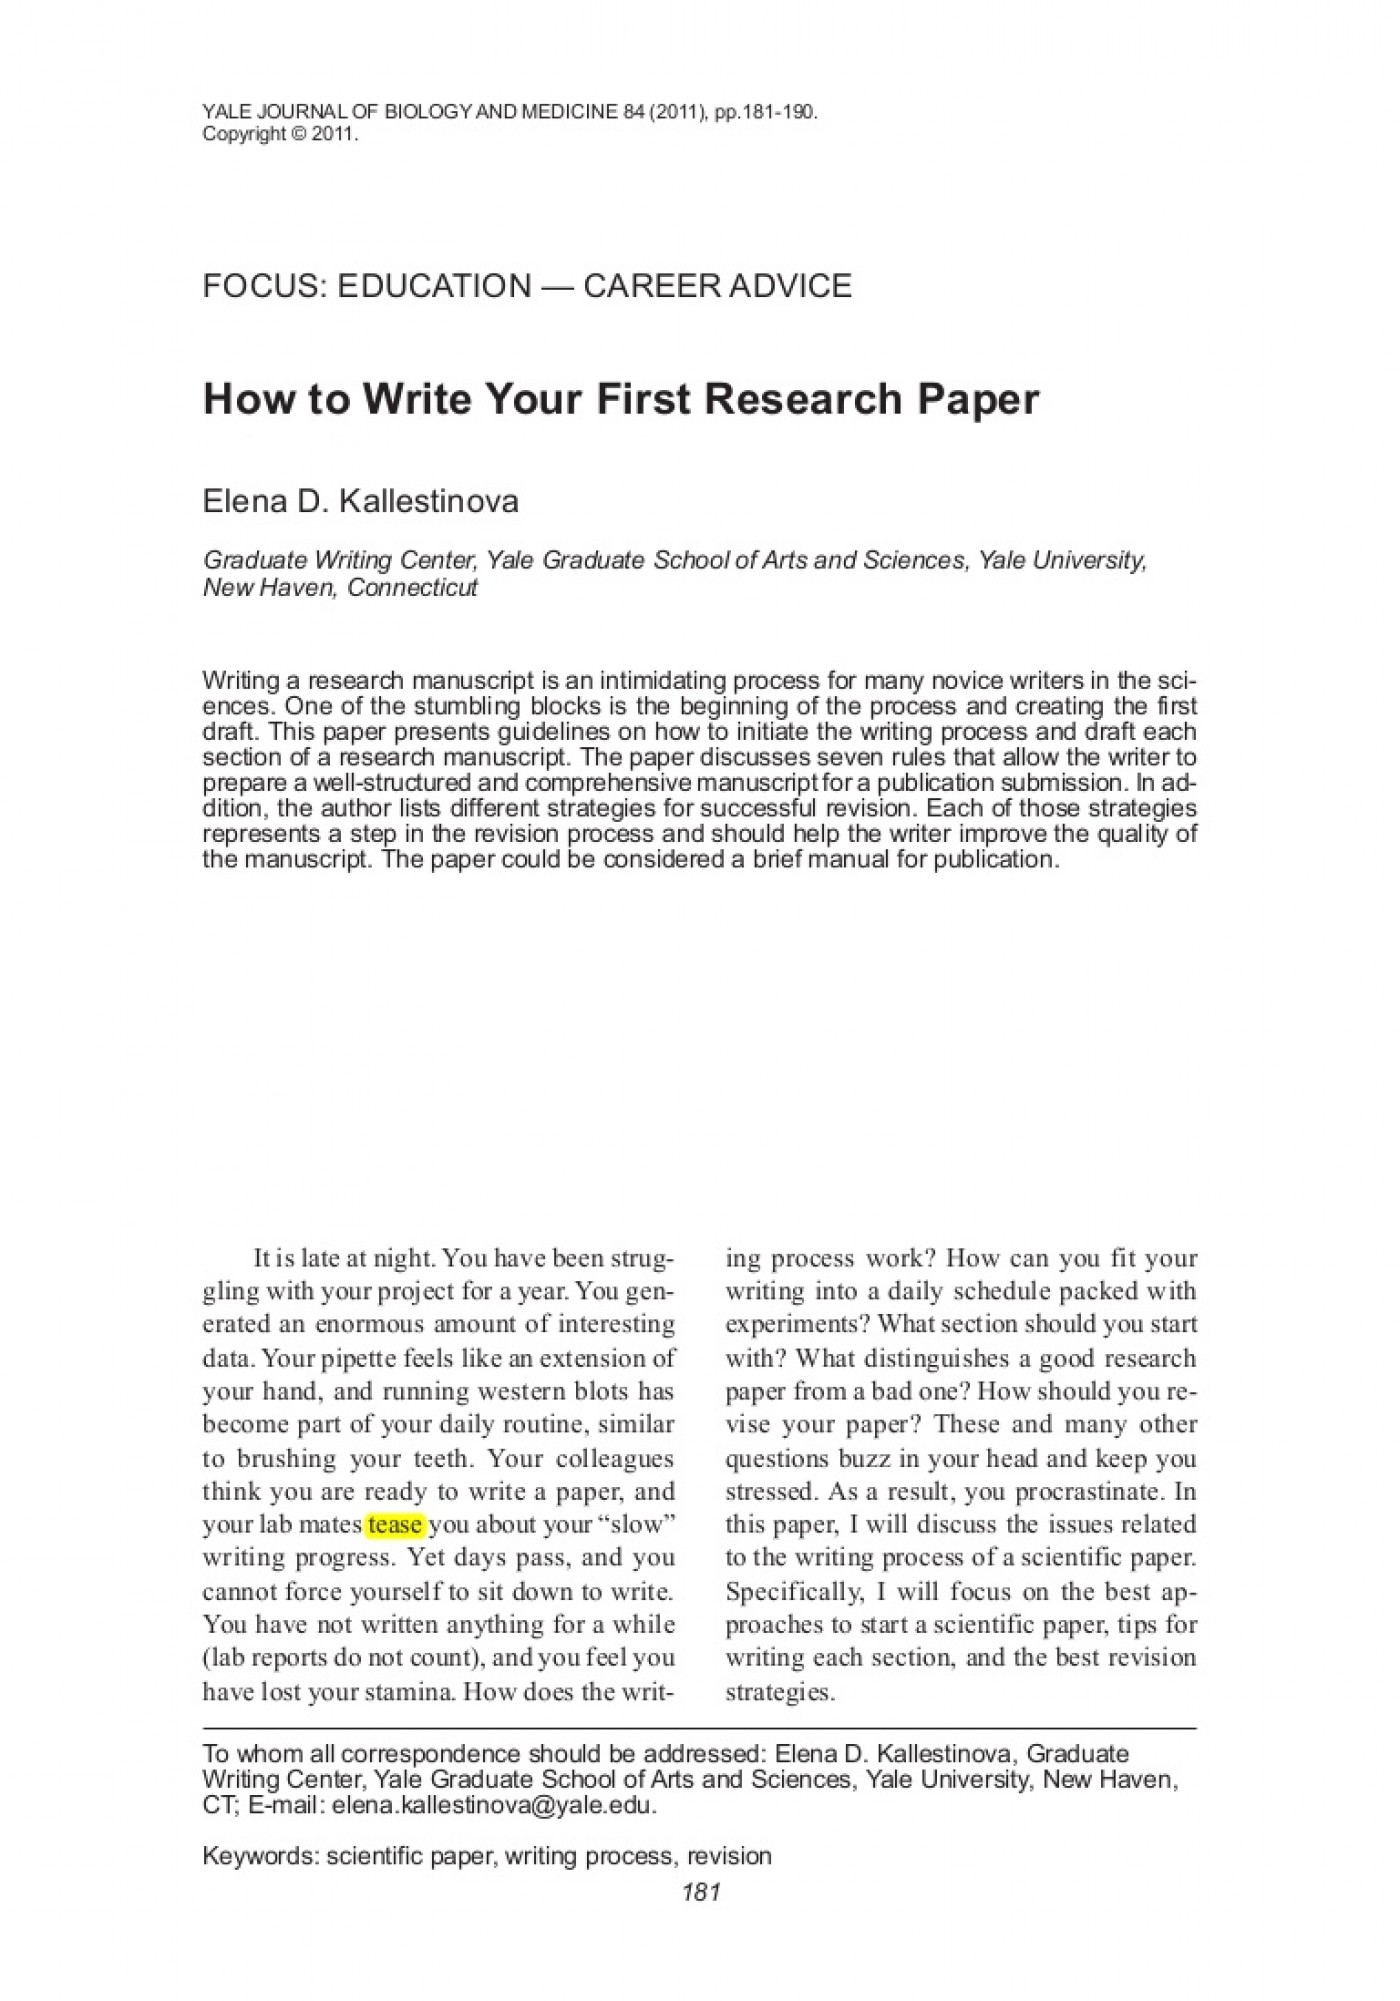 008 Research Paper How To Write Papers Howtowriteyourfirstresearchpaper Lva1 App6891 Thumbnail Outstanding A Proposal In Apa Format Do I Conclusion For Outline 1400